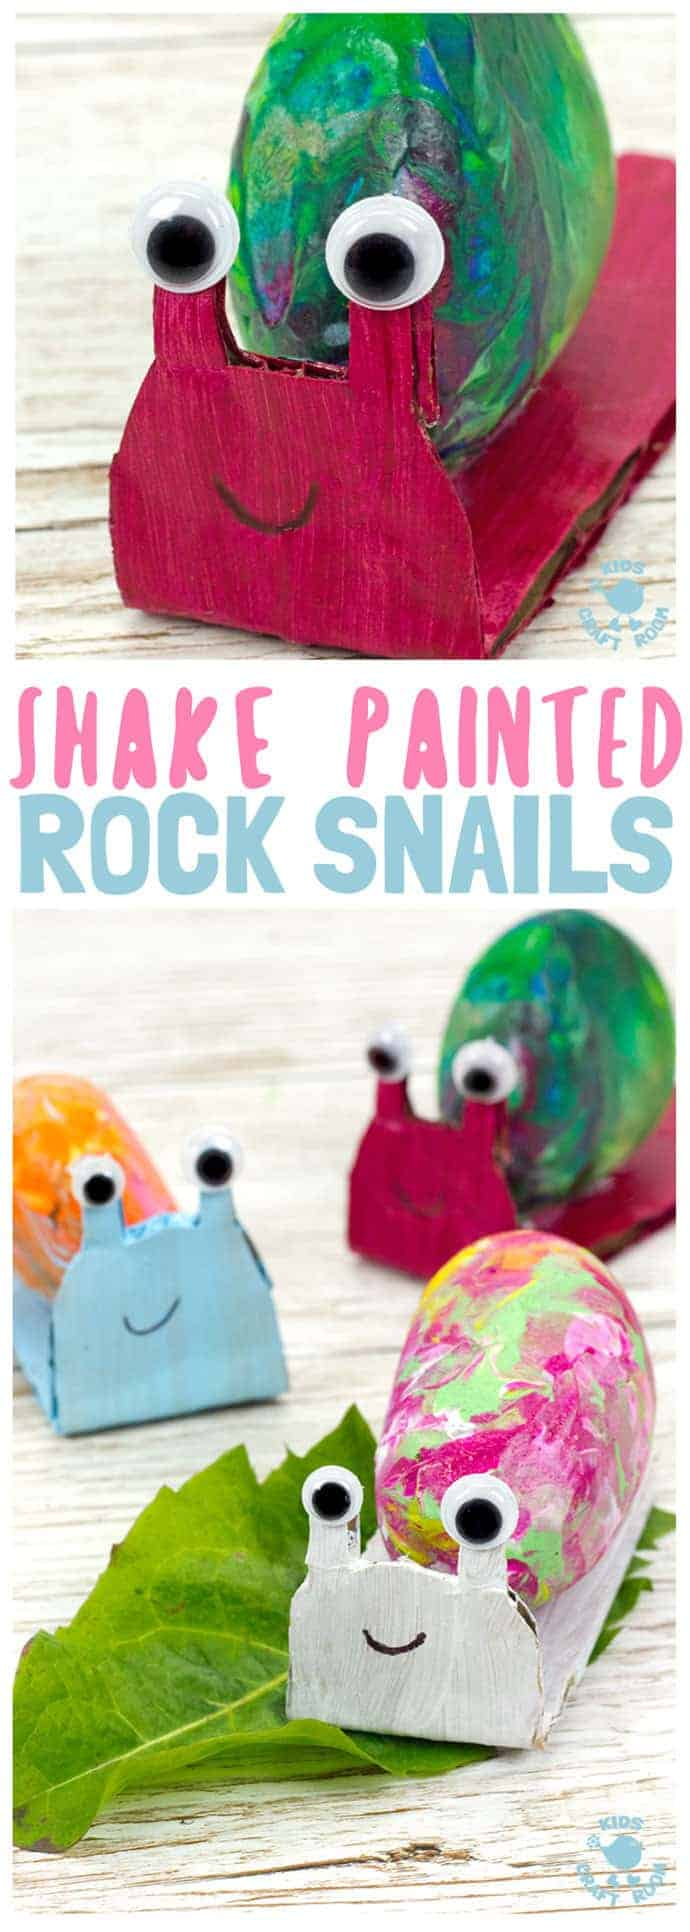 SHAKE PAINTING - CUTE SNAIL ROCK CRAFT- This rock painting idea gets kids active and is virtually mess free! This Snail Craft gets kids shaking out their wiggles and fidgets to make beautifully painted rock snail shells! Grab your rocks, your kids and your wiggles and let's make cute snails. It is so fun and each is unique! #rockcrafts #paintedrocks #rockpainting #naturecrafts #kidscrafts #craftsforkids #kidscraftroom #snails #snailcrafts #summercrafts #springcrafts #shakepainting #painting